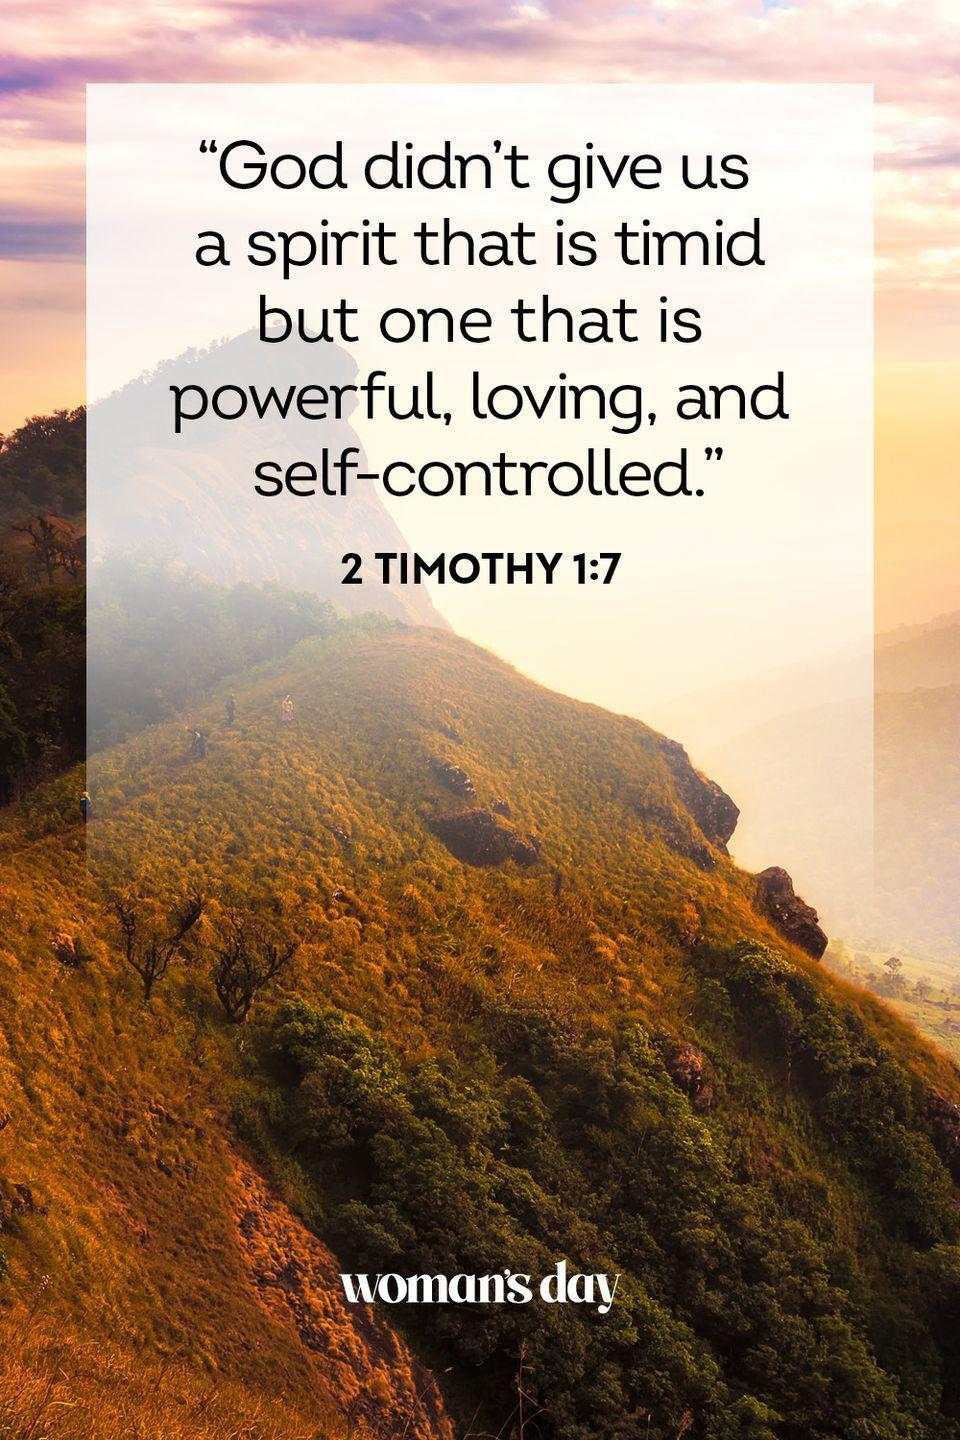 """<p>""""God didn't give us a spirit that is timid but one that is powerful, loving, and self-controlled.""""</p><p><strong>The Good News:</strong> For as much as you worry, you're not actually built for it. God wants you to love yourself and fear not.</p>"""